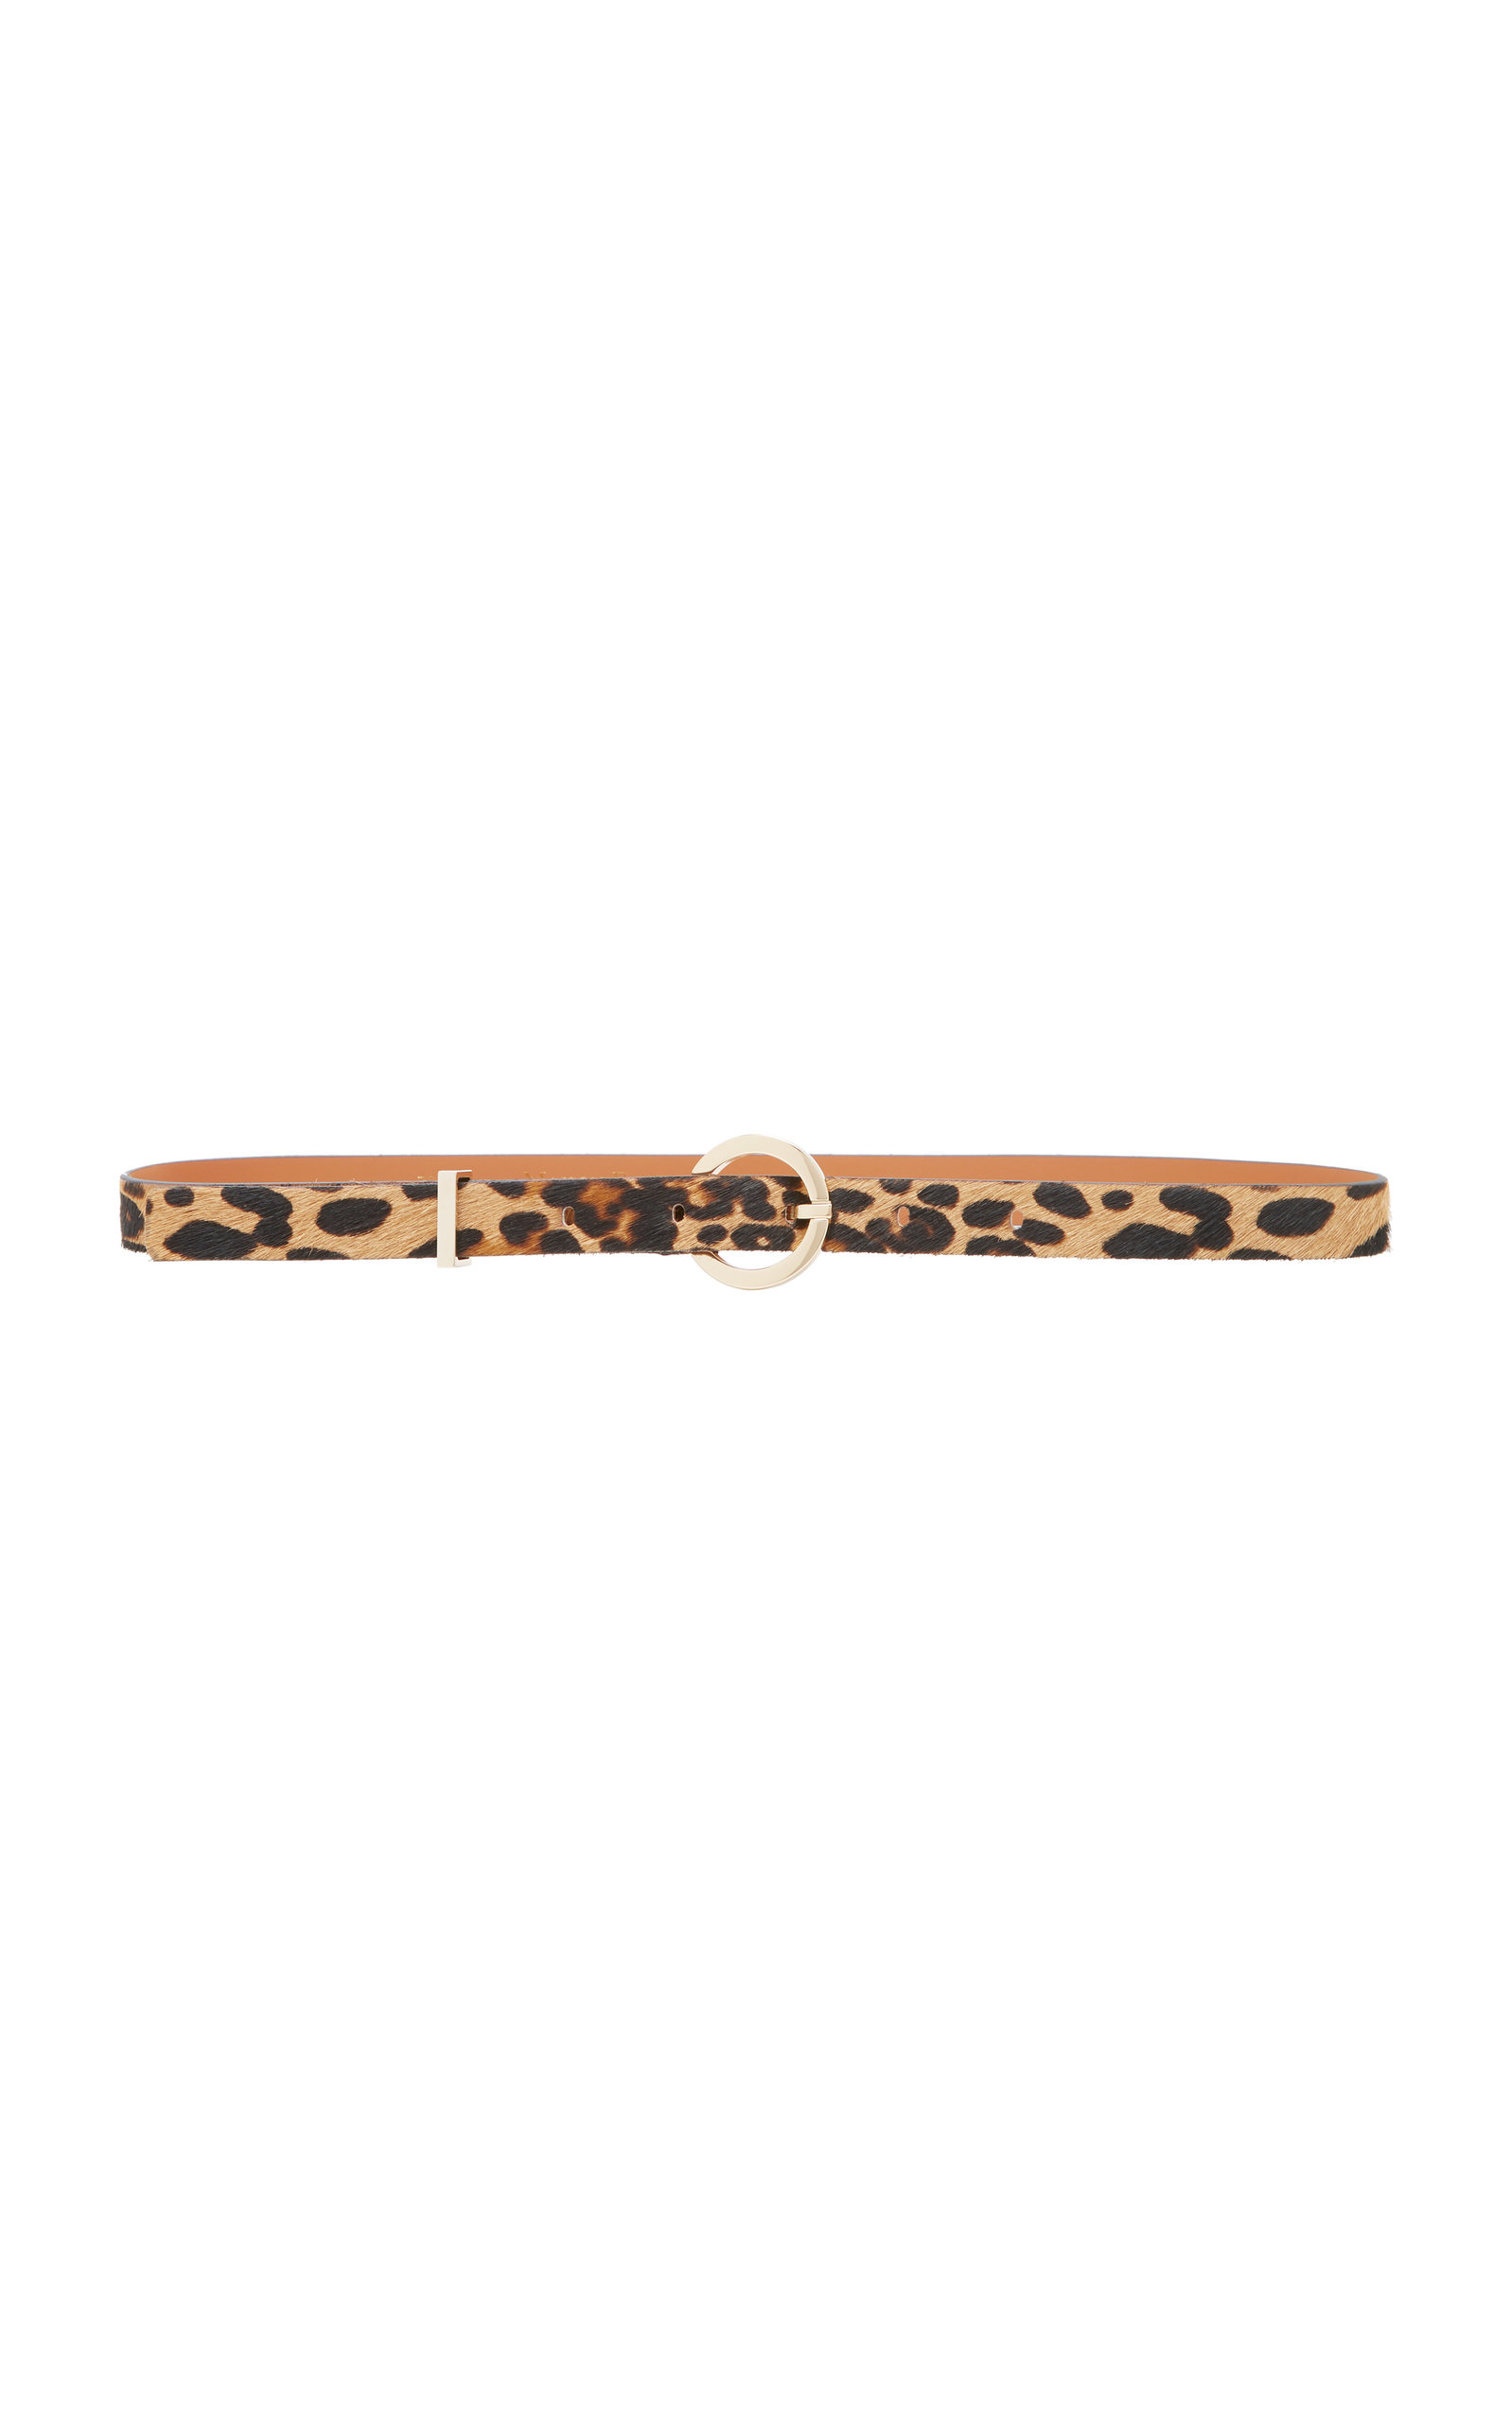 MAISON BOINET LEOPARD PRINT LEATHER AND CALF HAIR BELT